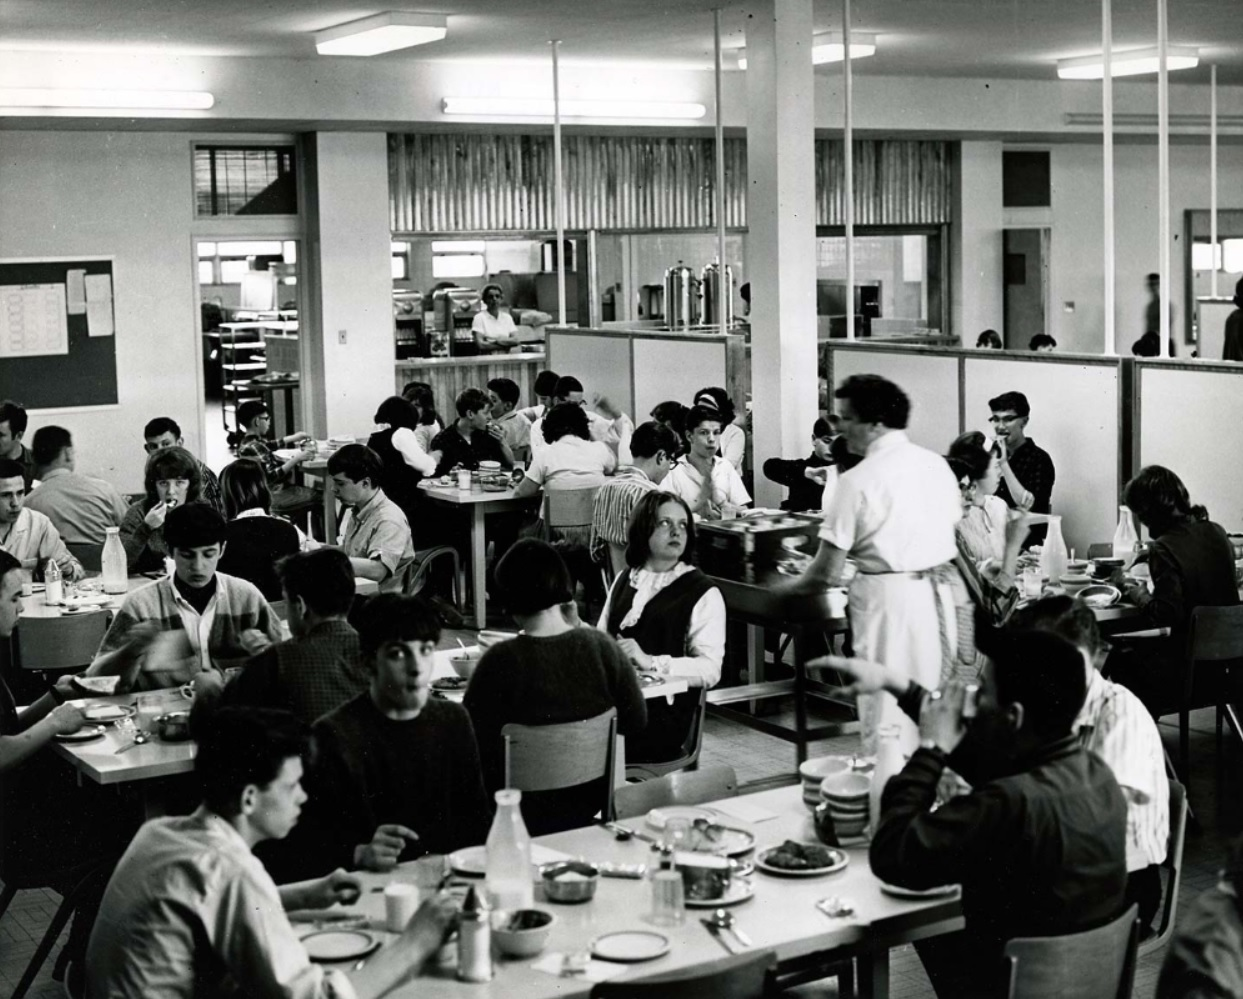 Students are shown at the dining room of the Interprovincial School for the Education of the Deaf in Amherst, N.S. (Nova Scotia Archives)